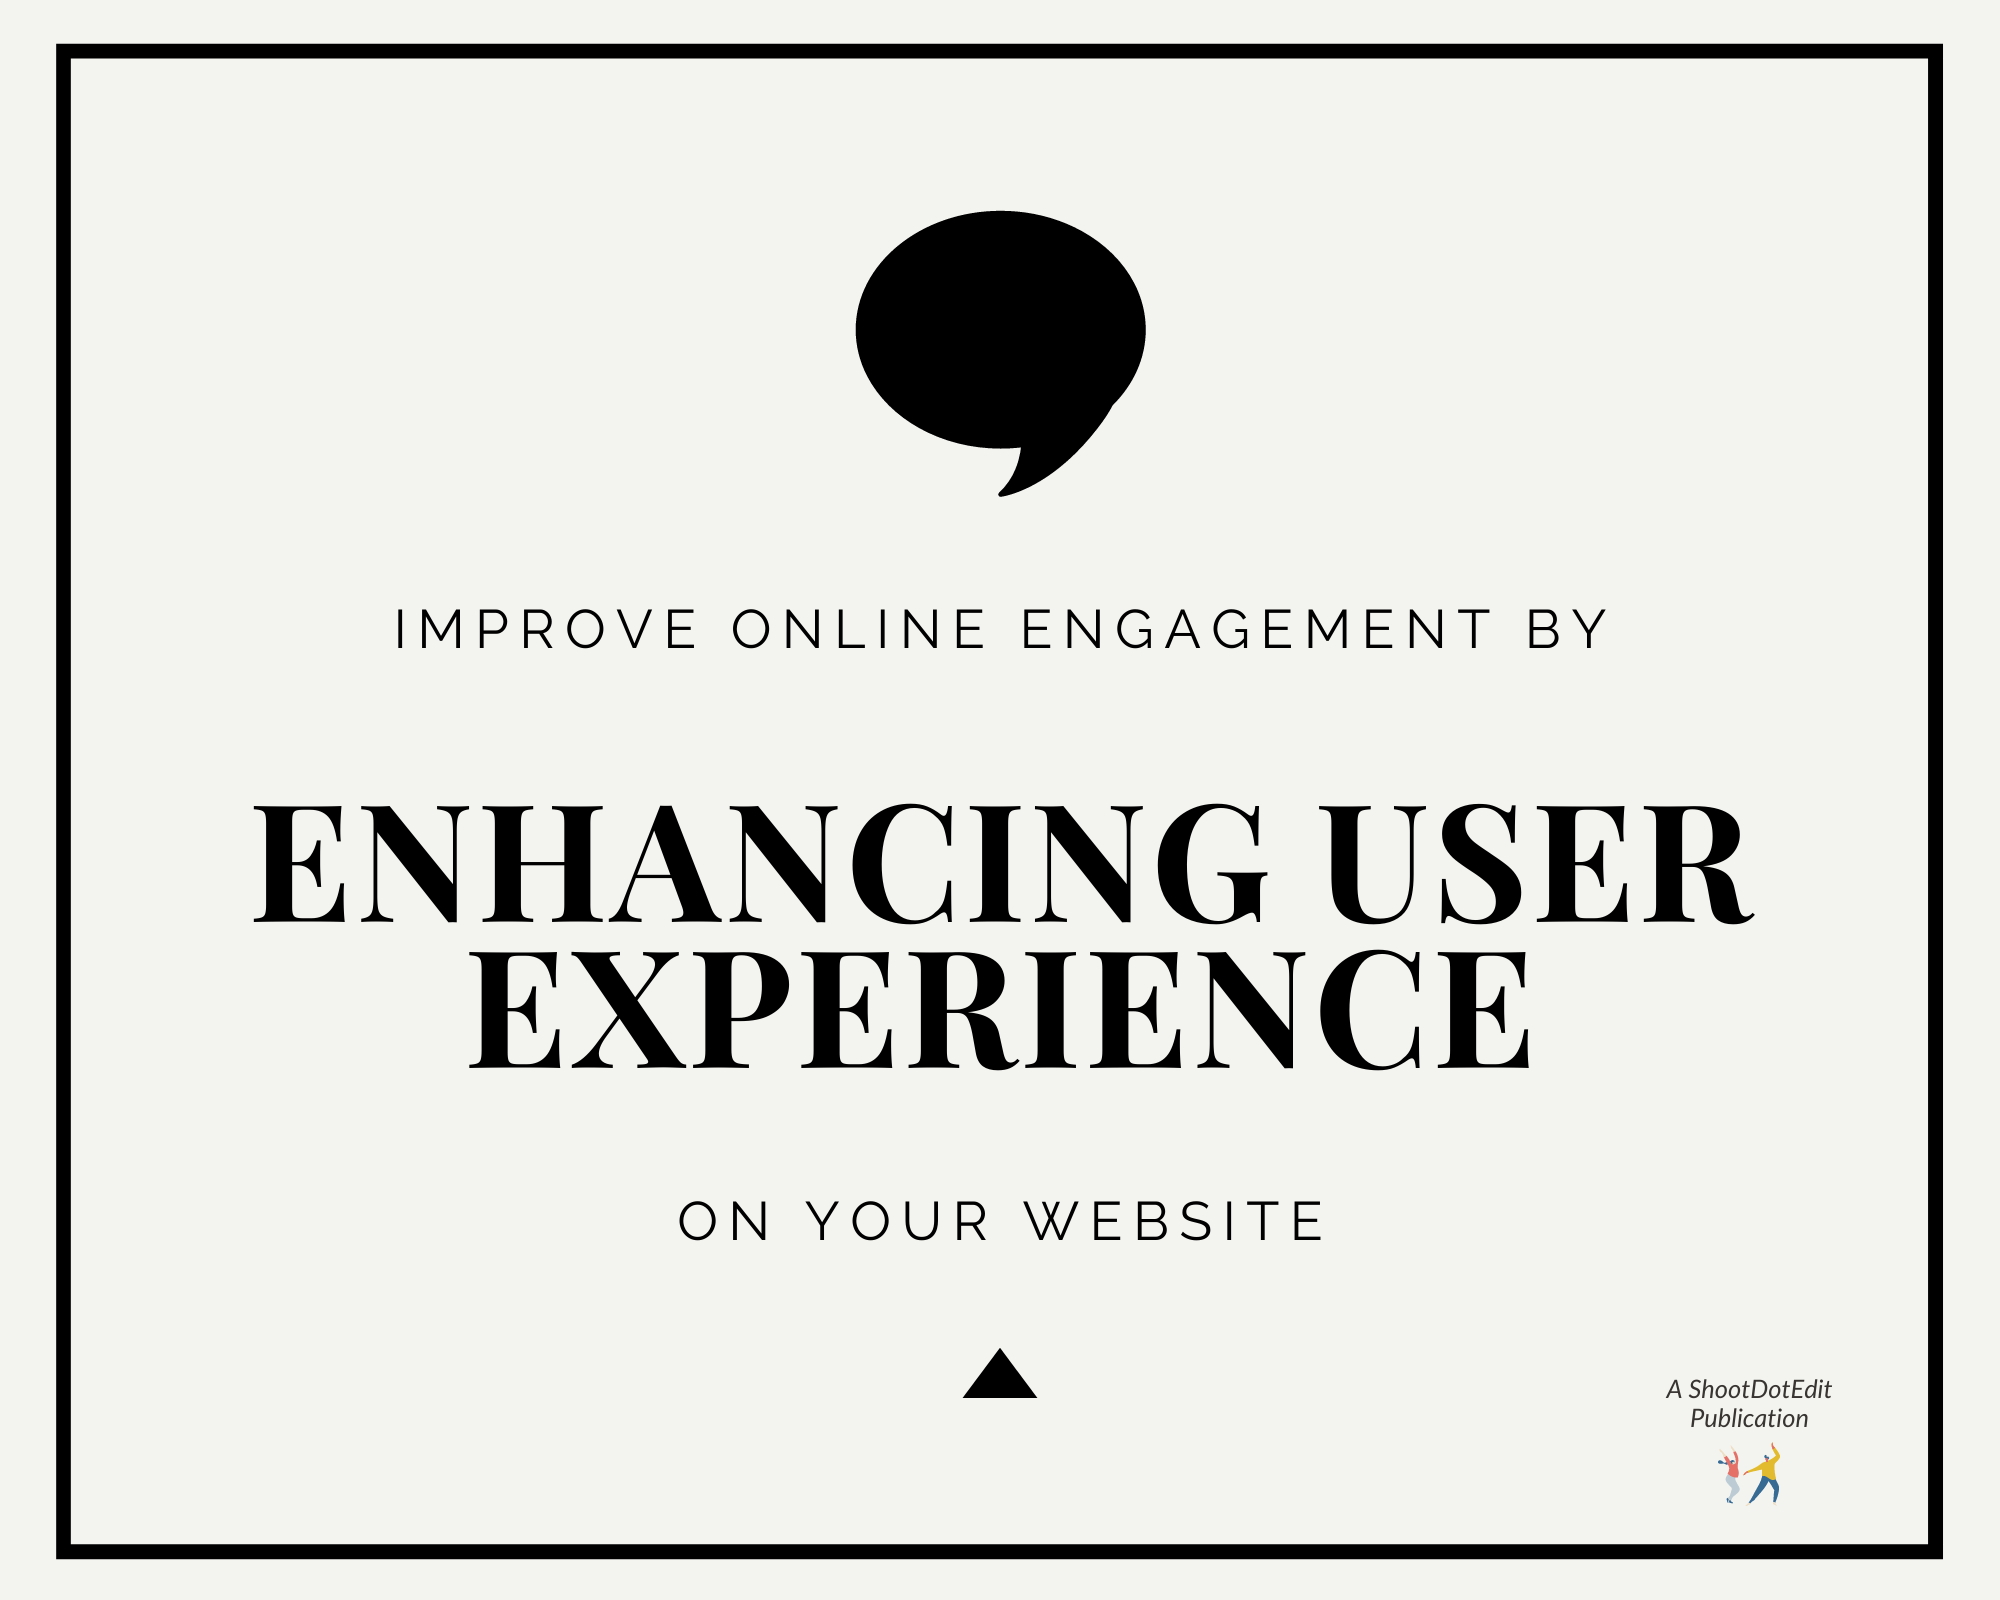 Infographic stating improve online engagement by enhancing user experience on your website